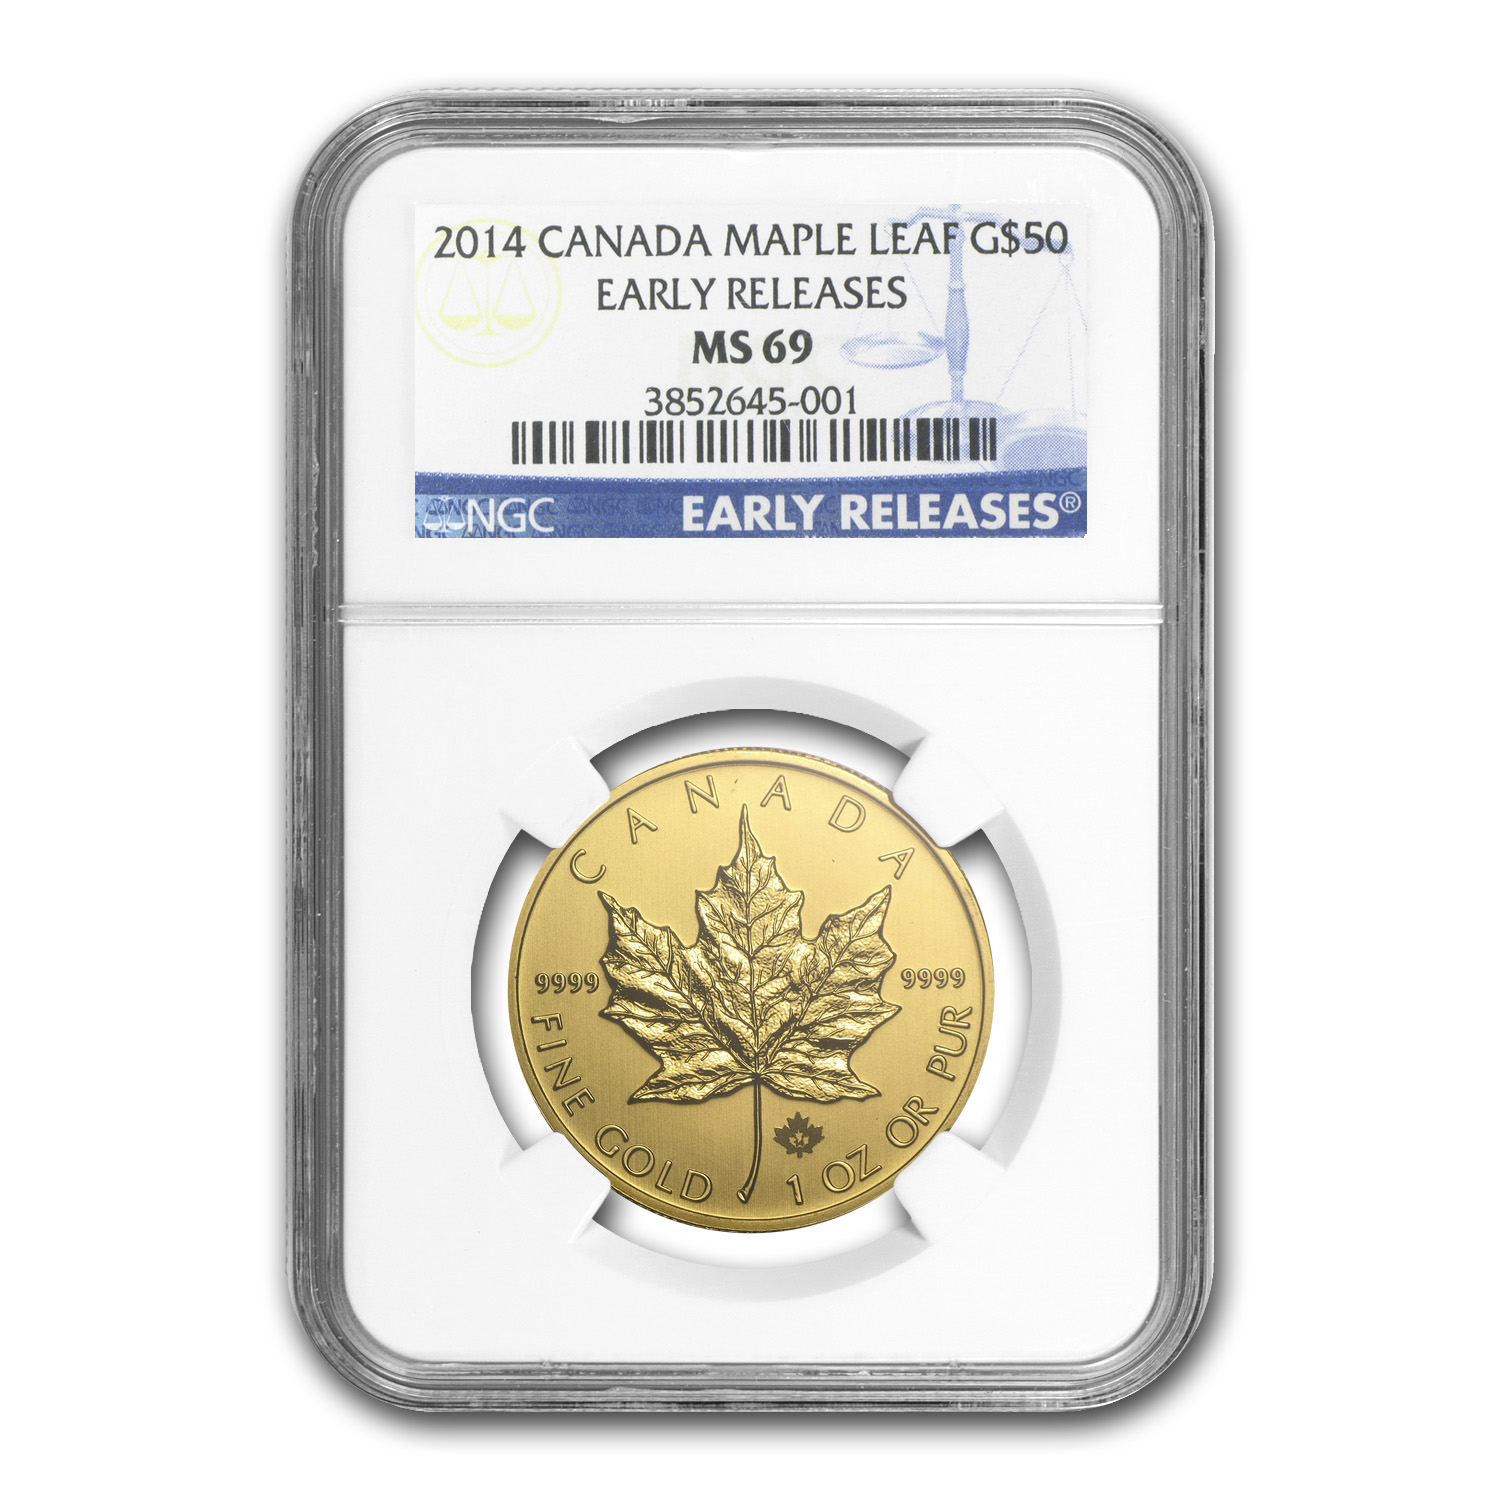 2014 1 oz Gold Canadian Maple Leaf MS-69 NGC (Early Releases)